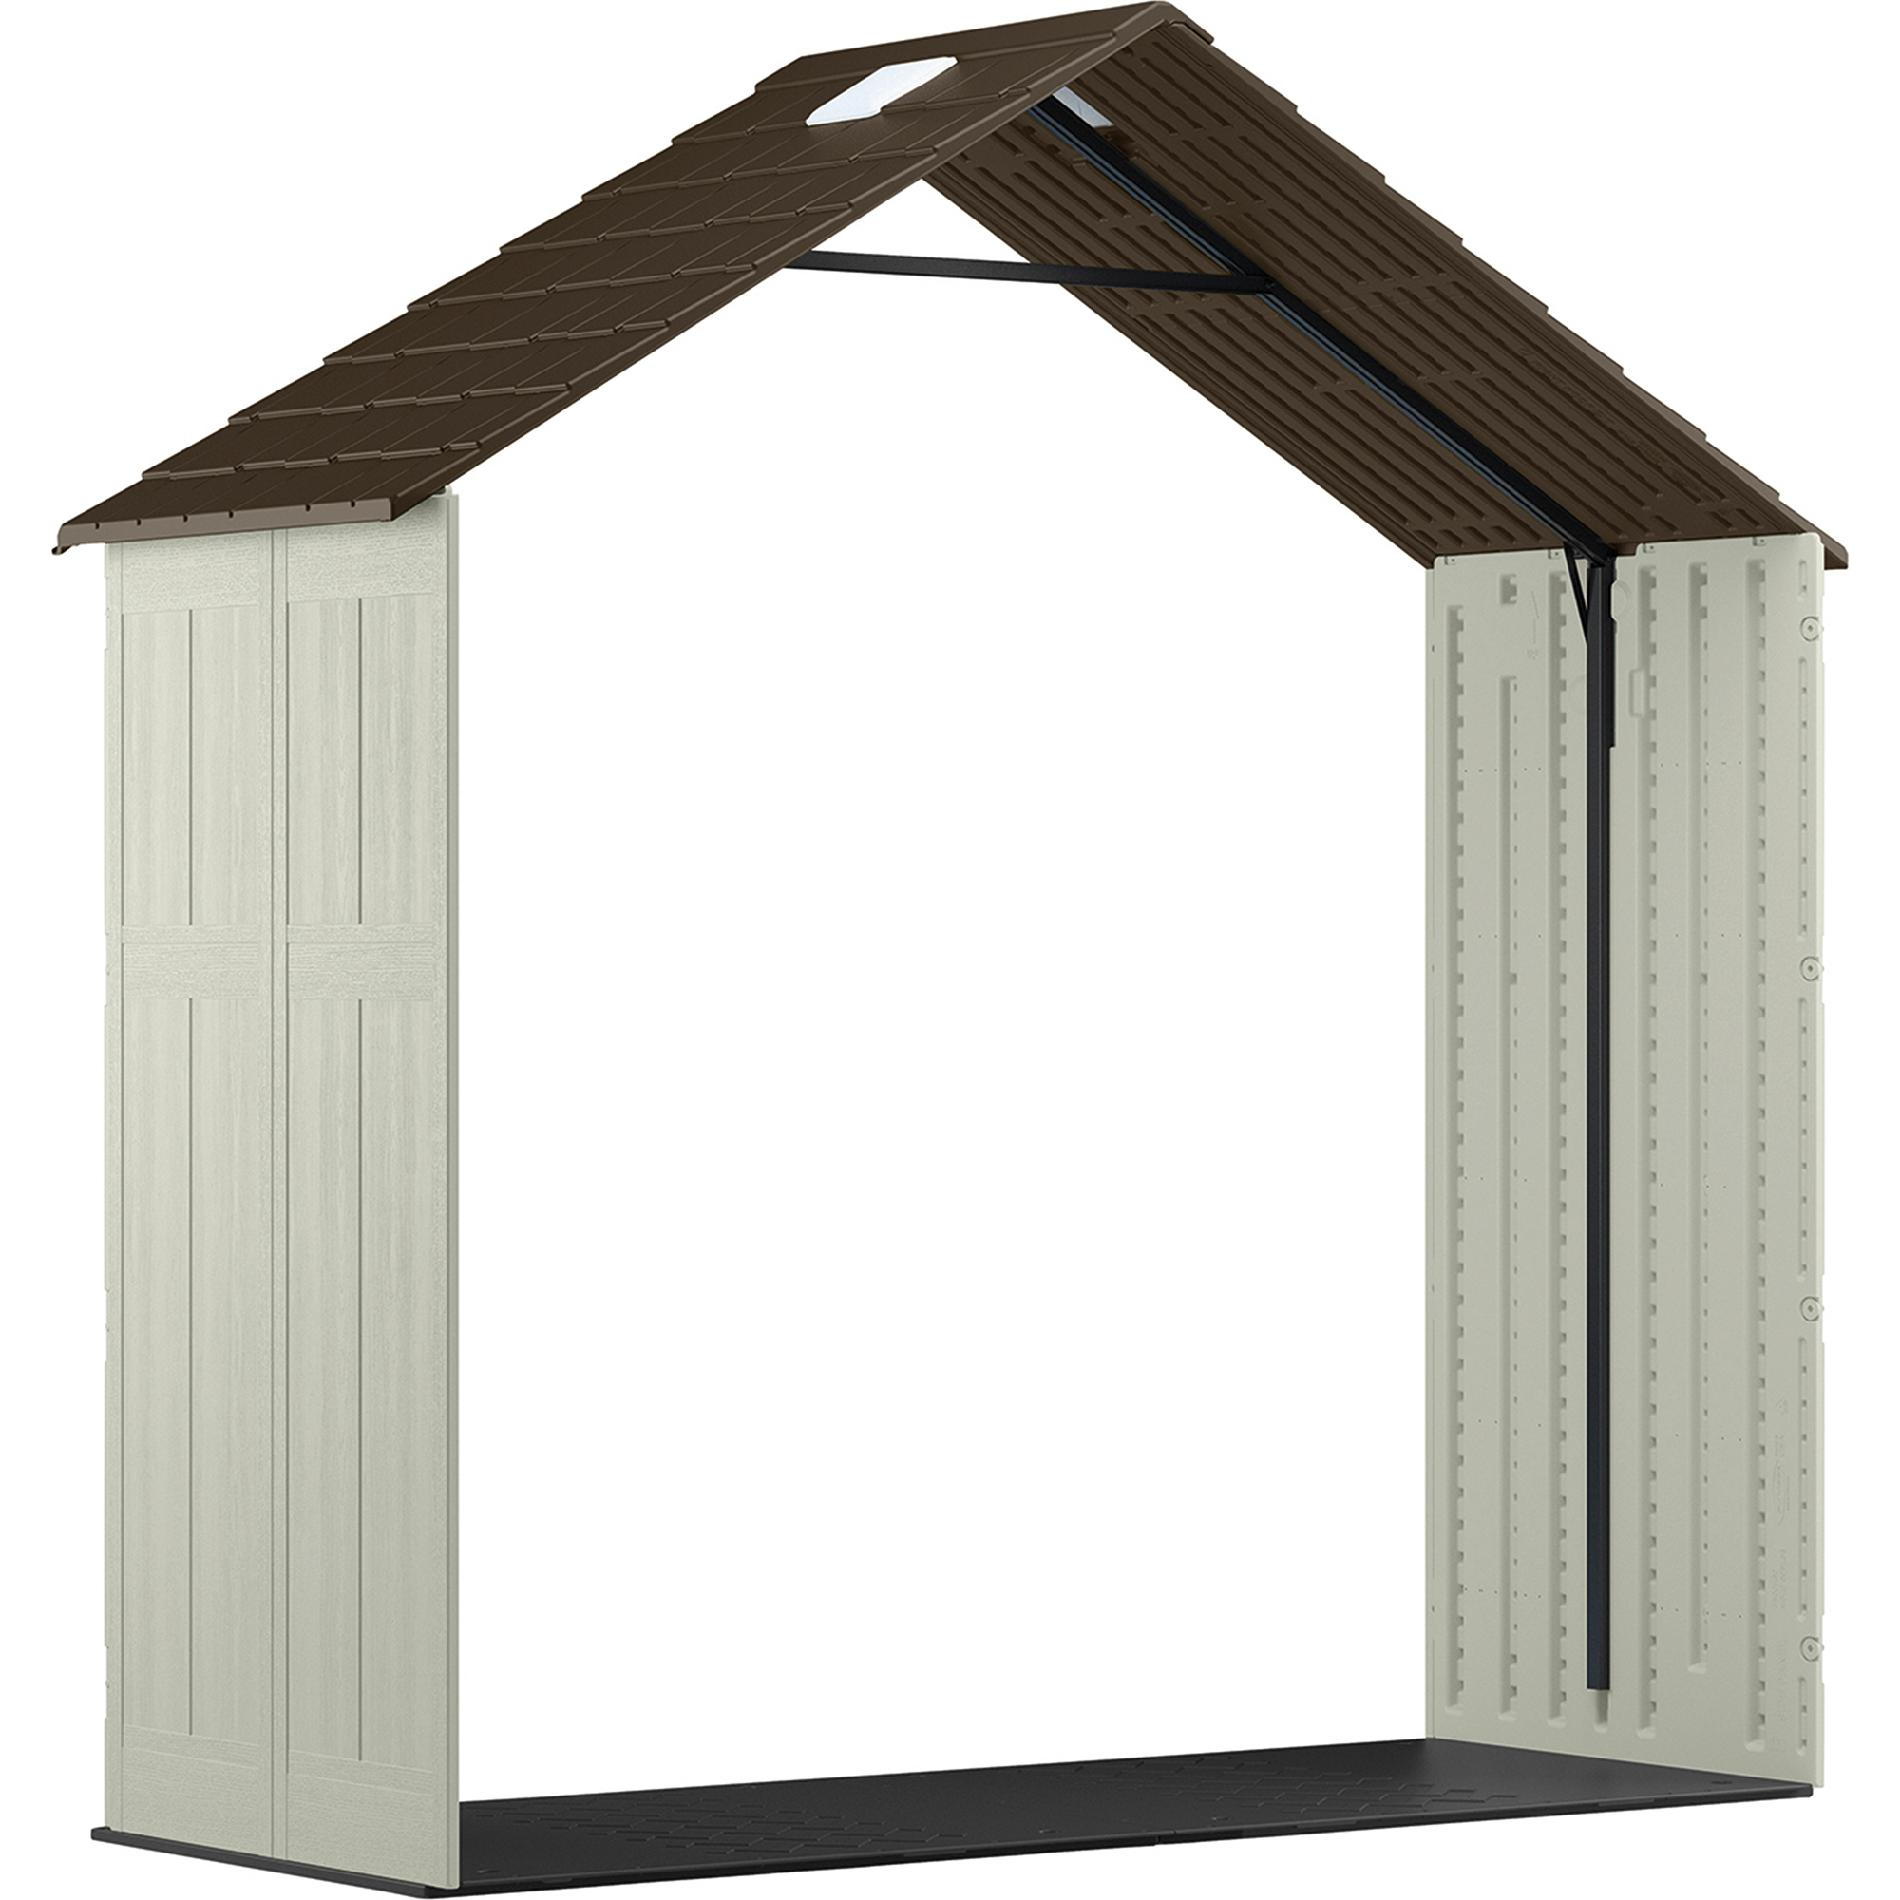 29999 sears craftsman 3 ft shed extension kit for 65007 8x7